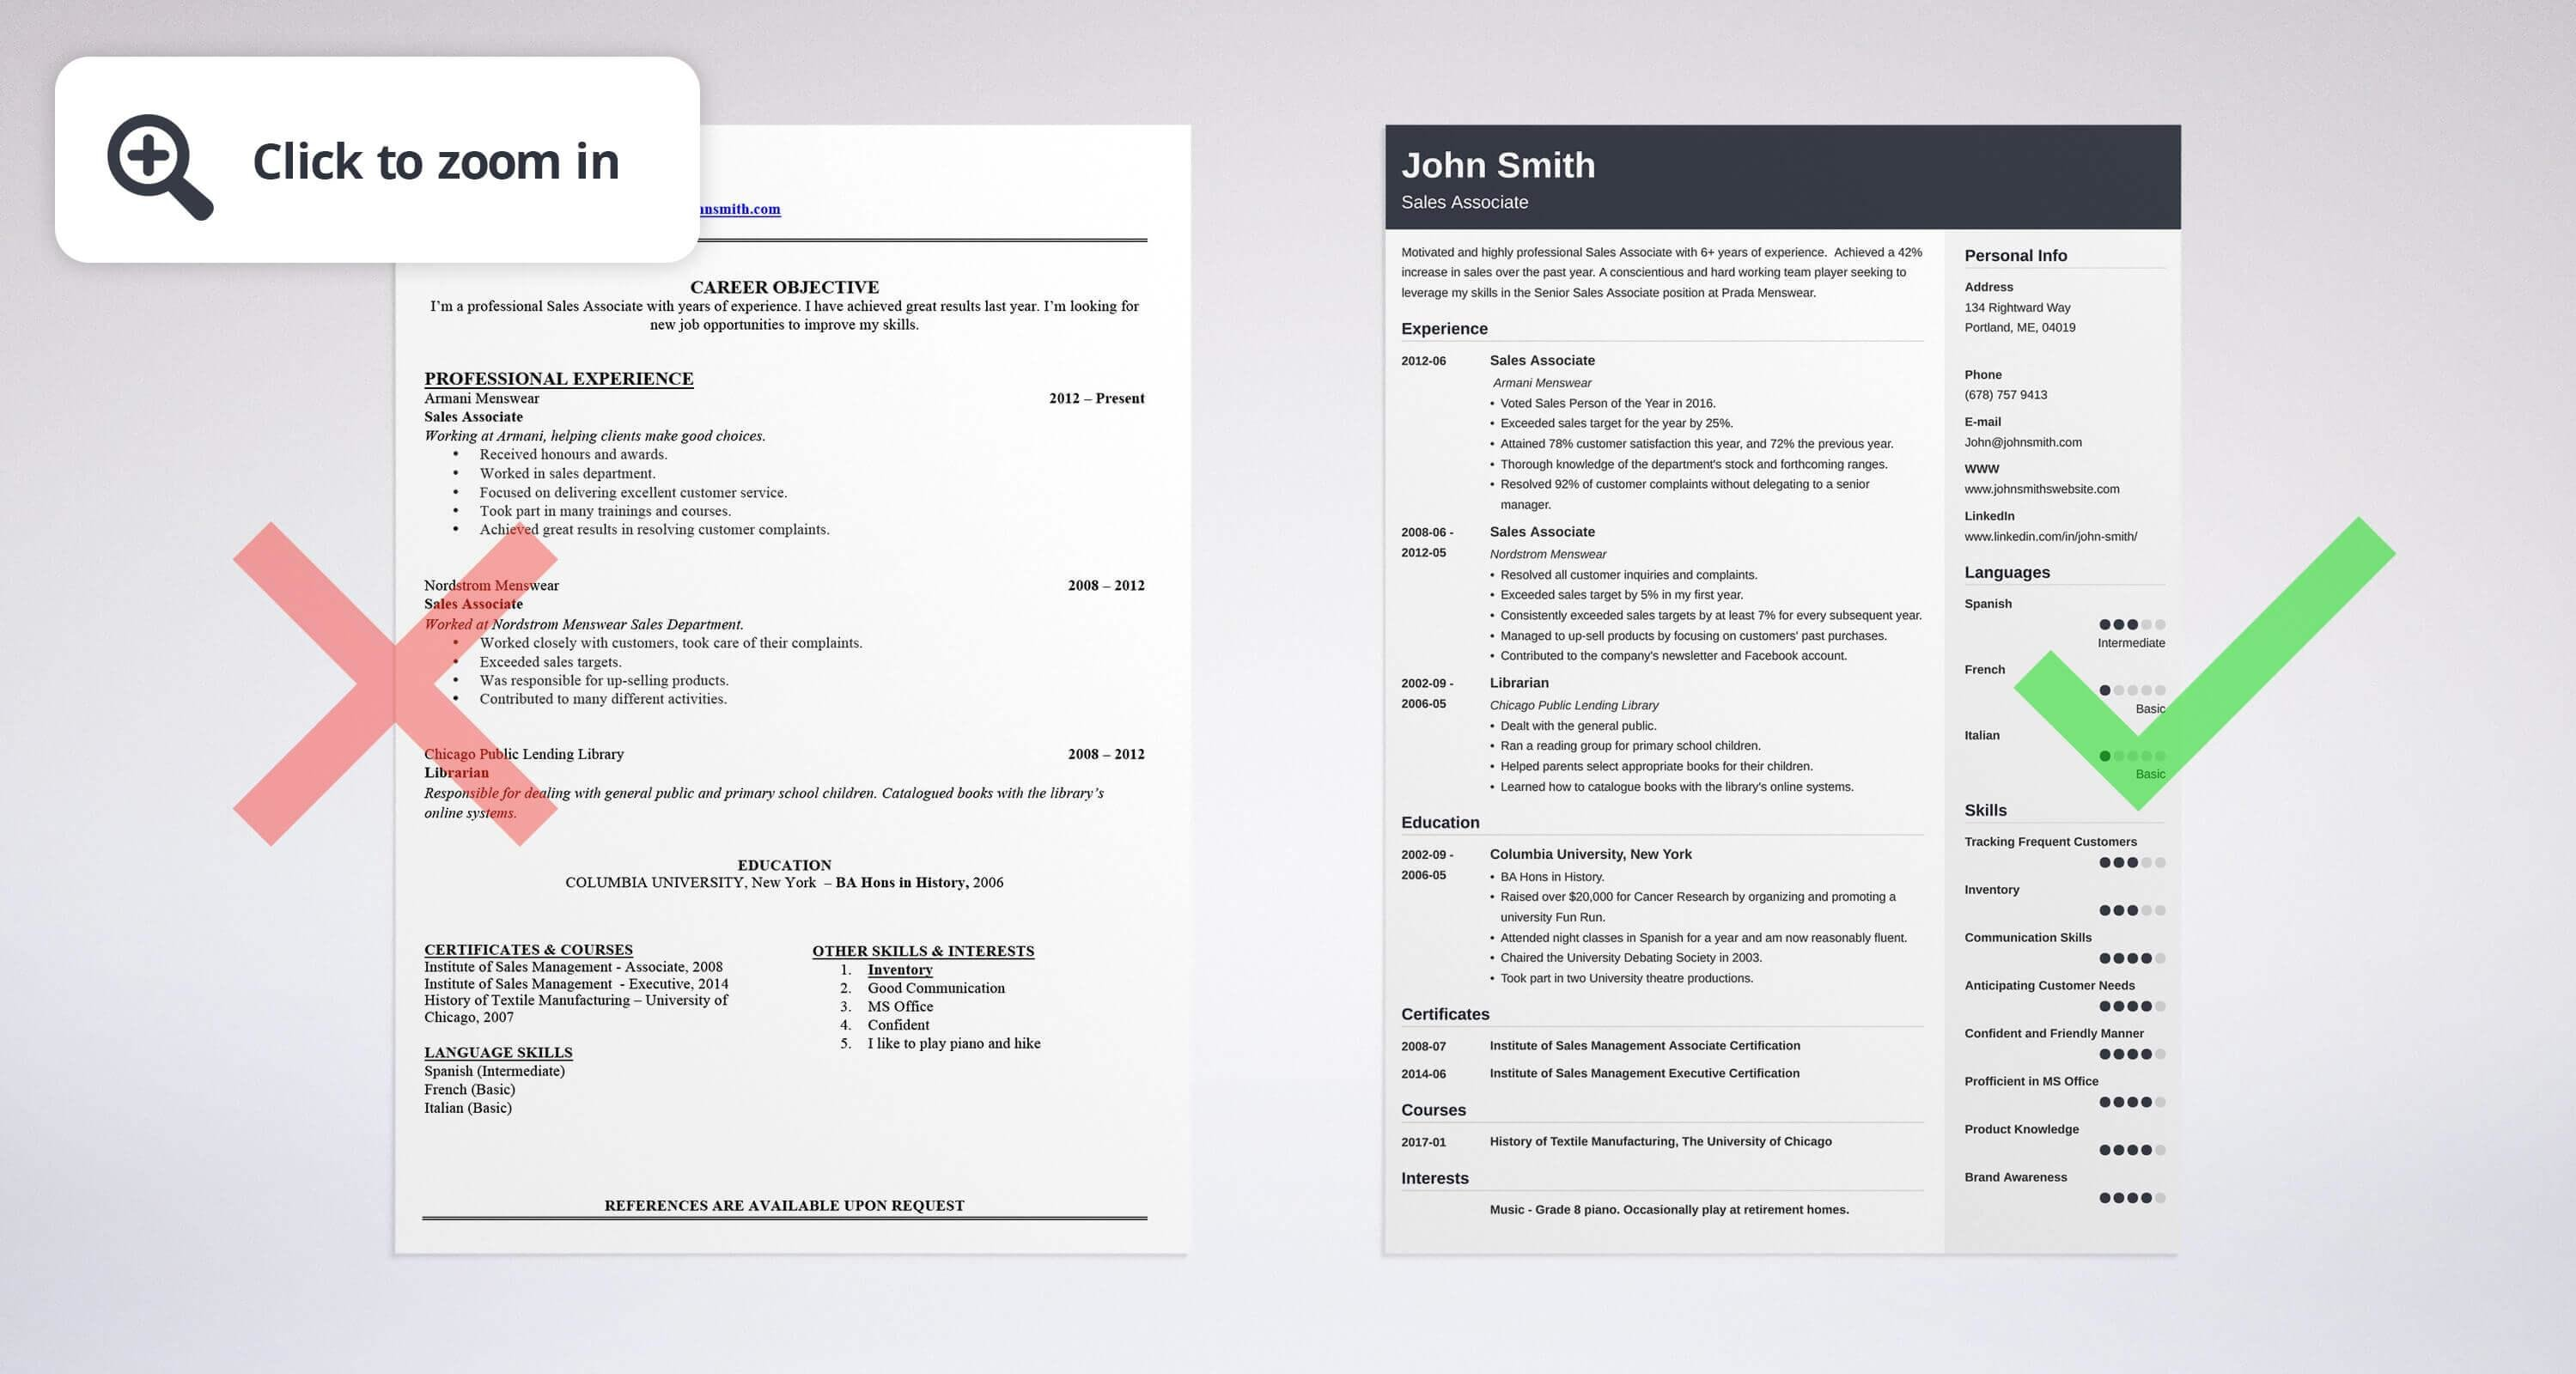 Marvelous Uptowork Within Skills And Abilities On A Resume